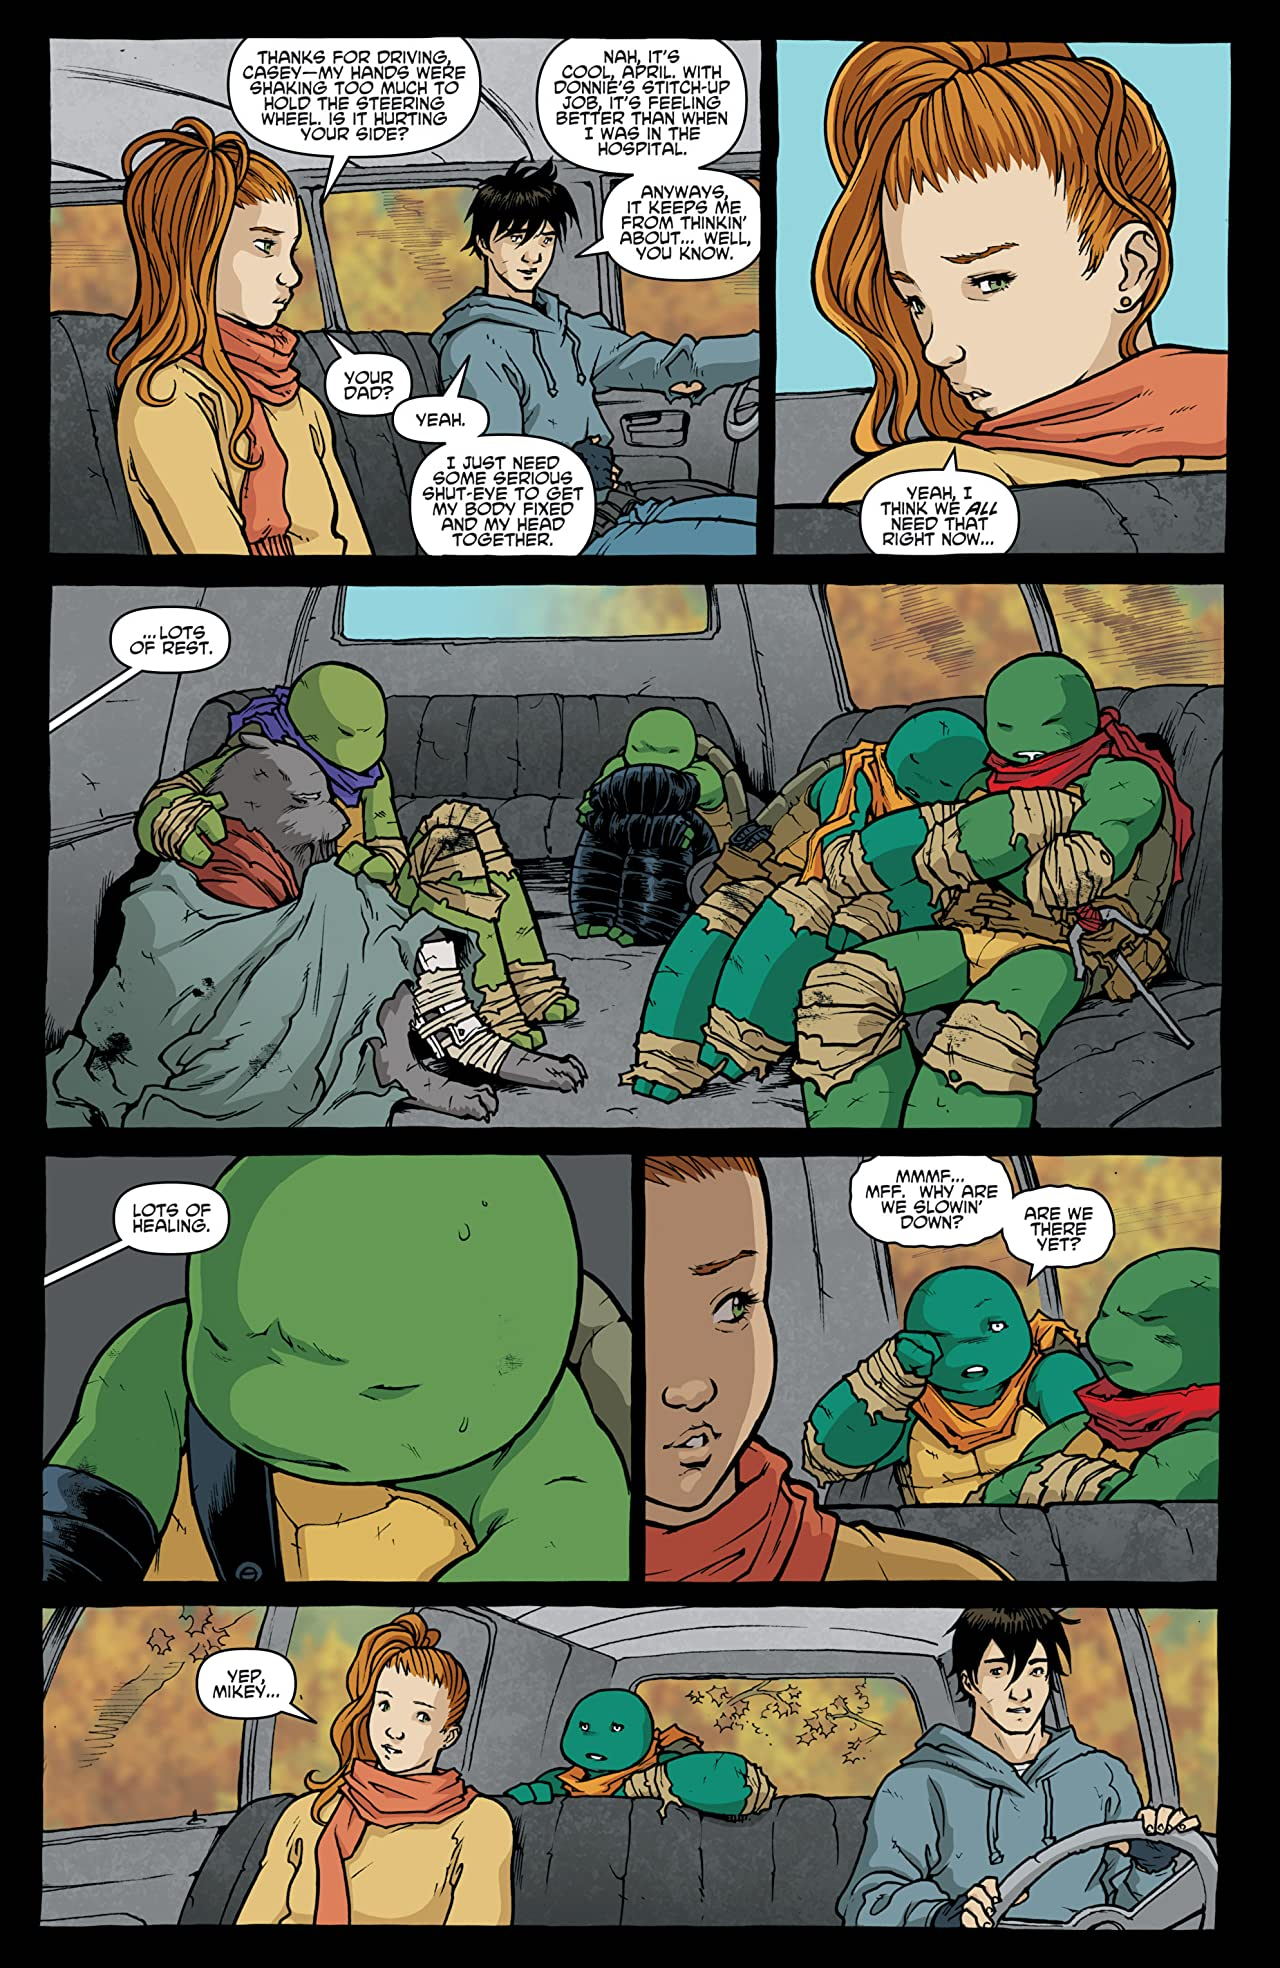 Teenage Mutant Ninja Turtles Vol. 8: Northampton